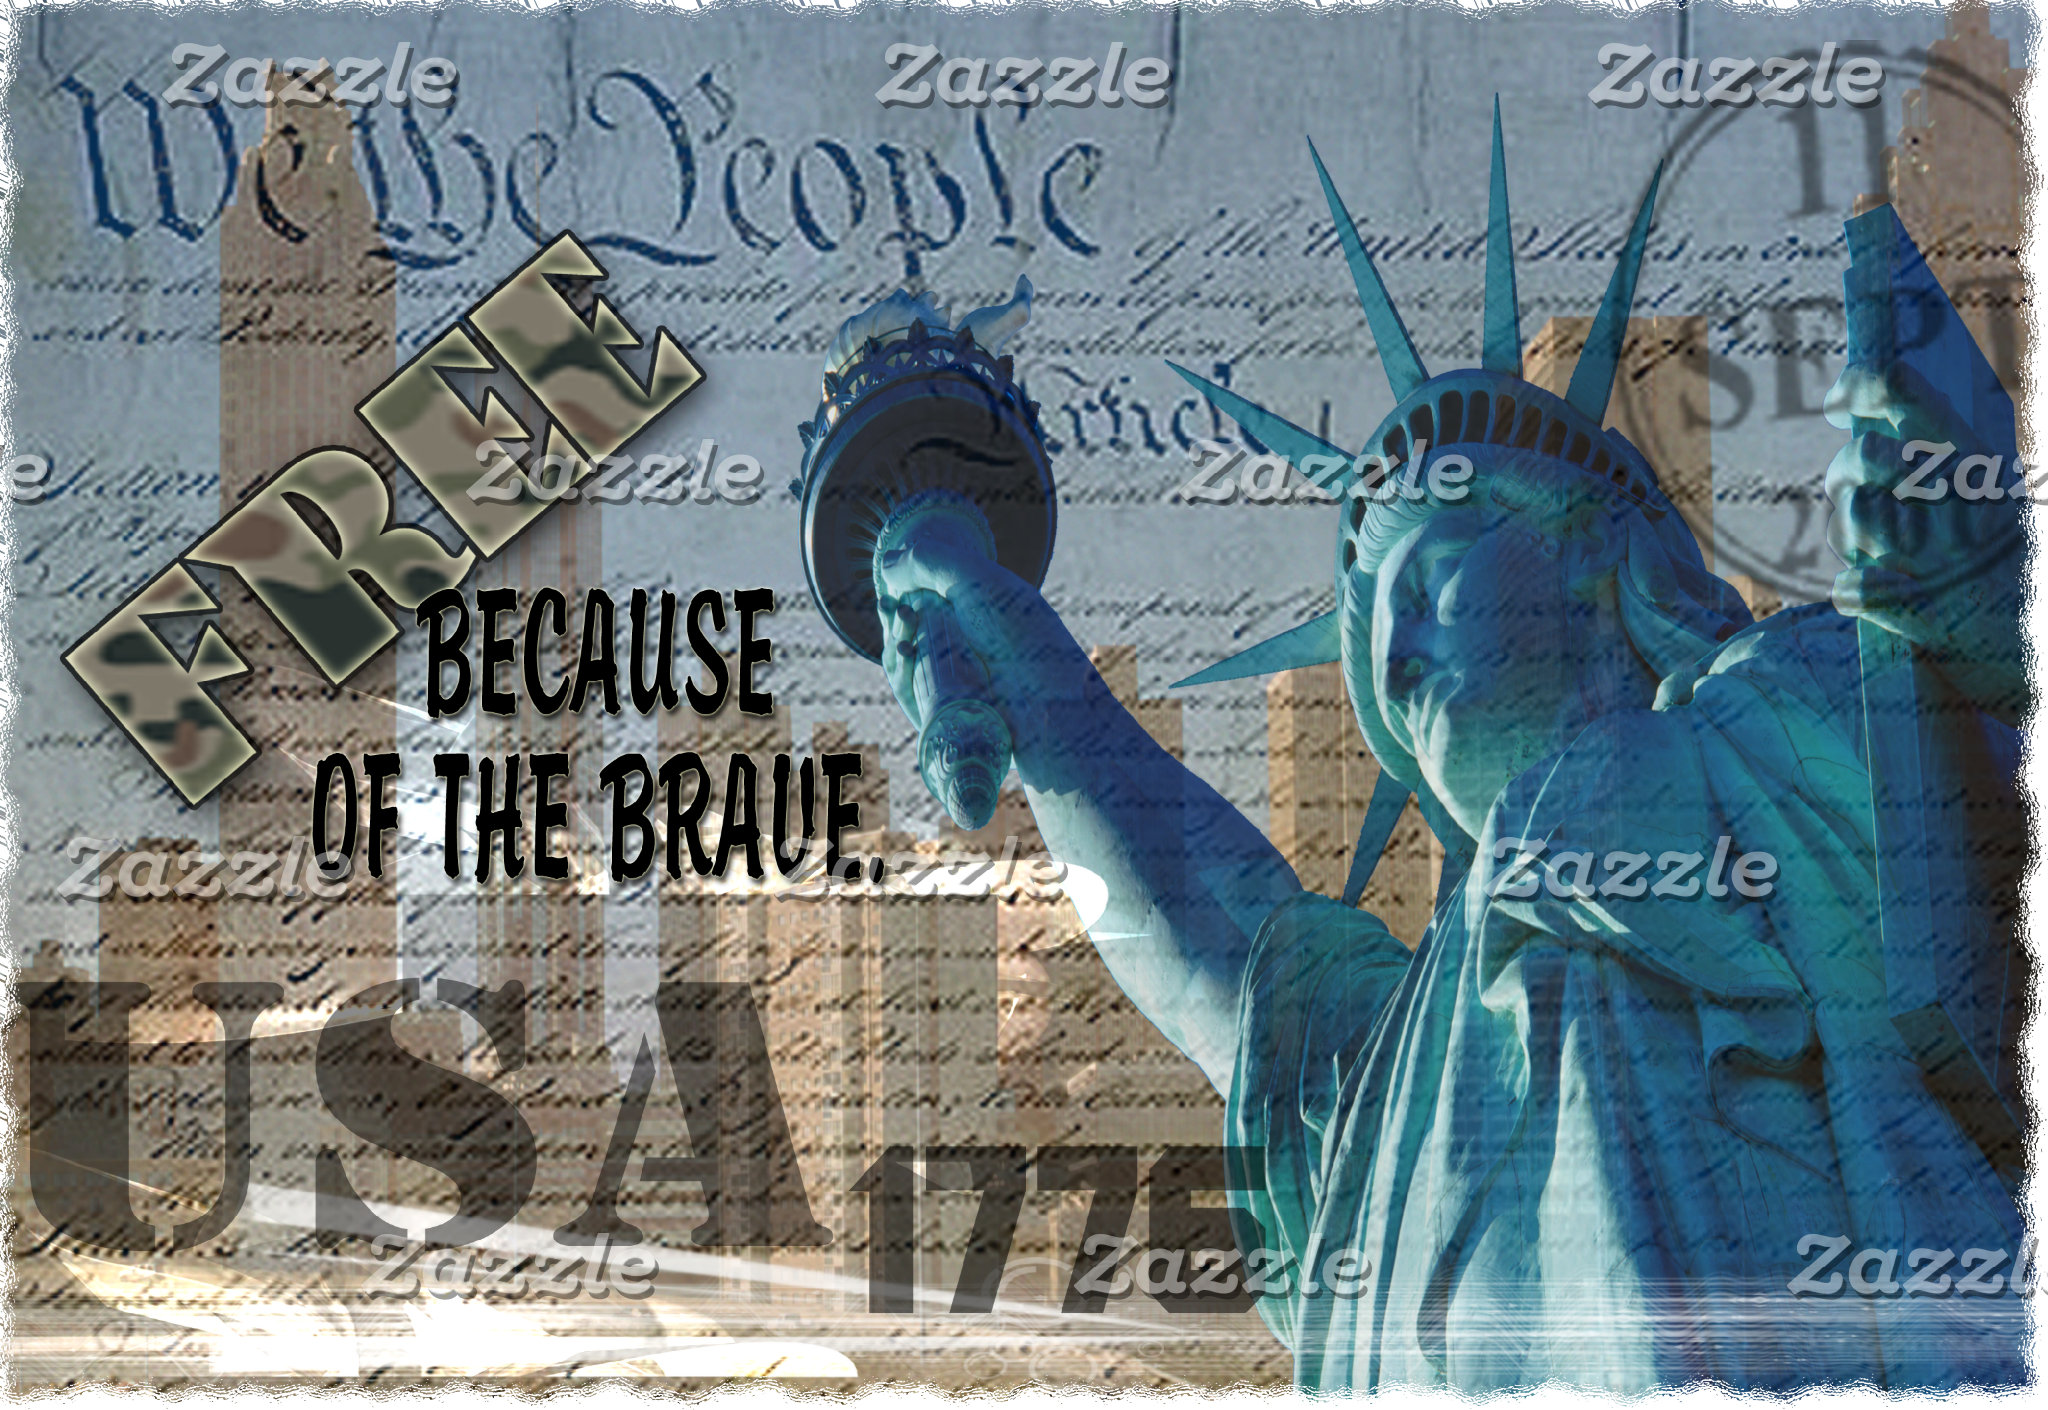 FREE BECAUSE OF THE BRAVE! STATUE OF LIBERTY